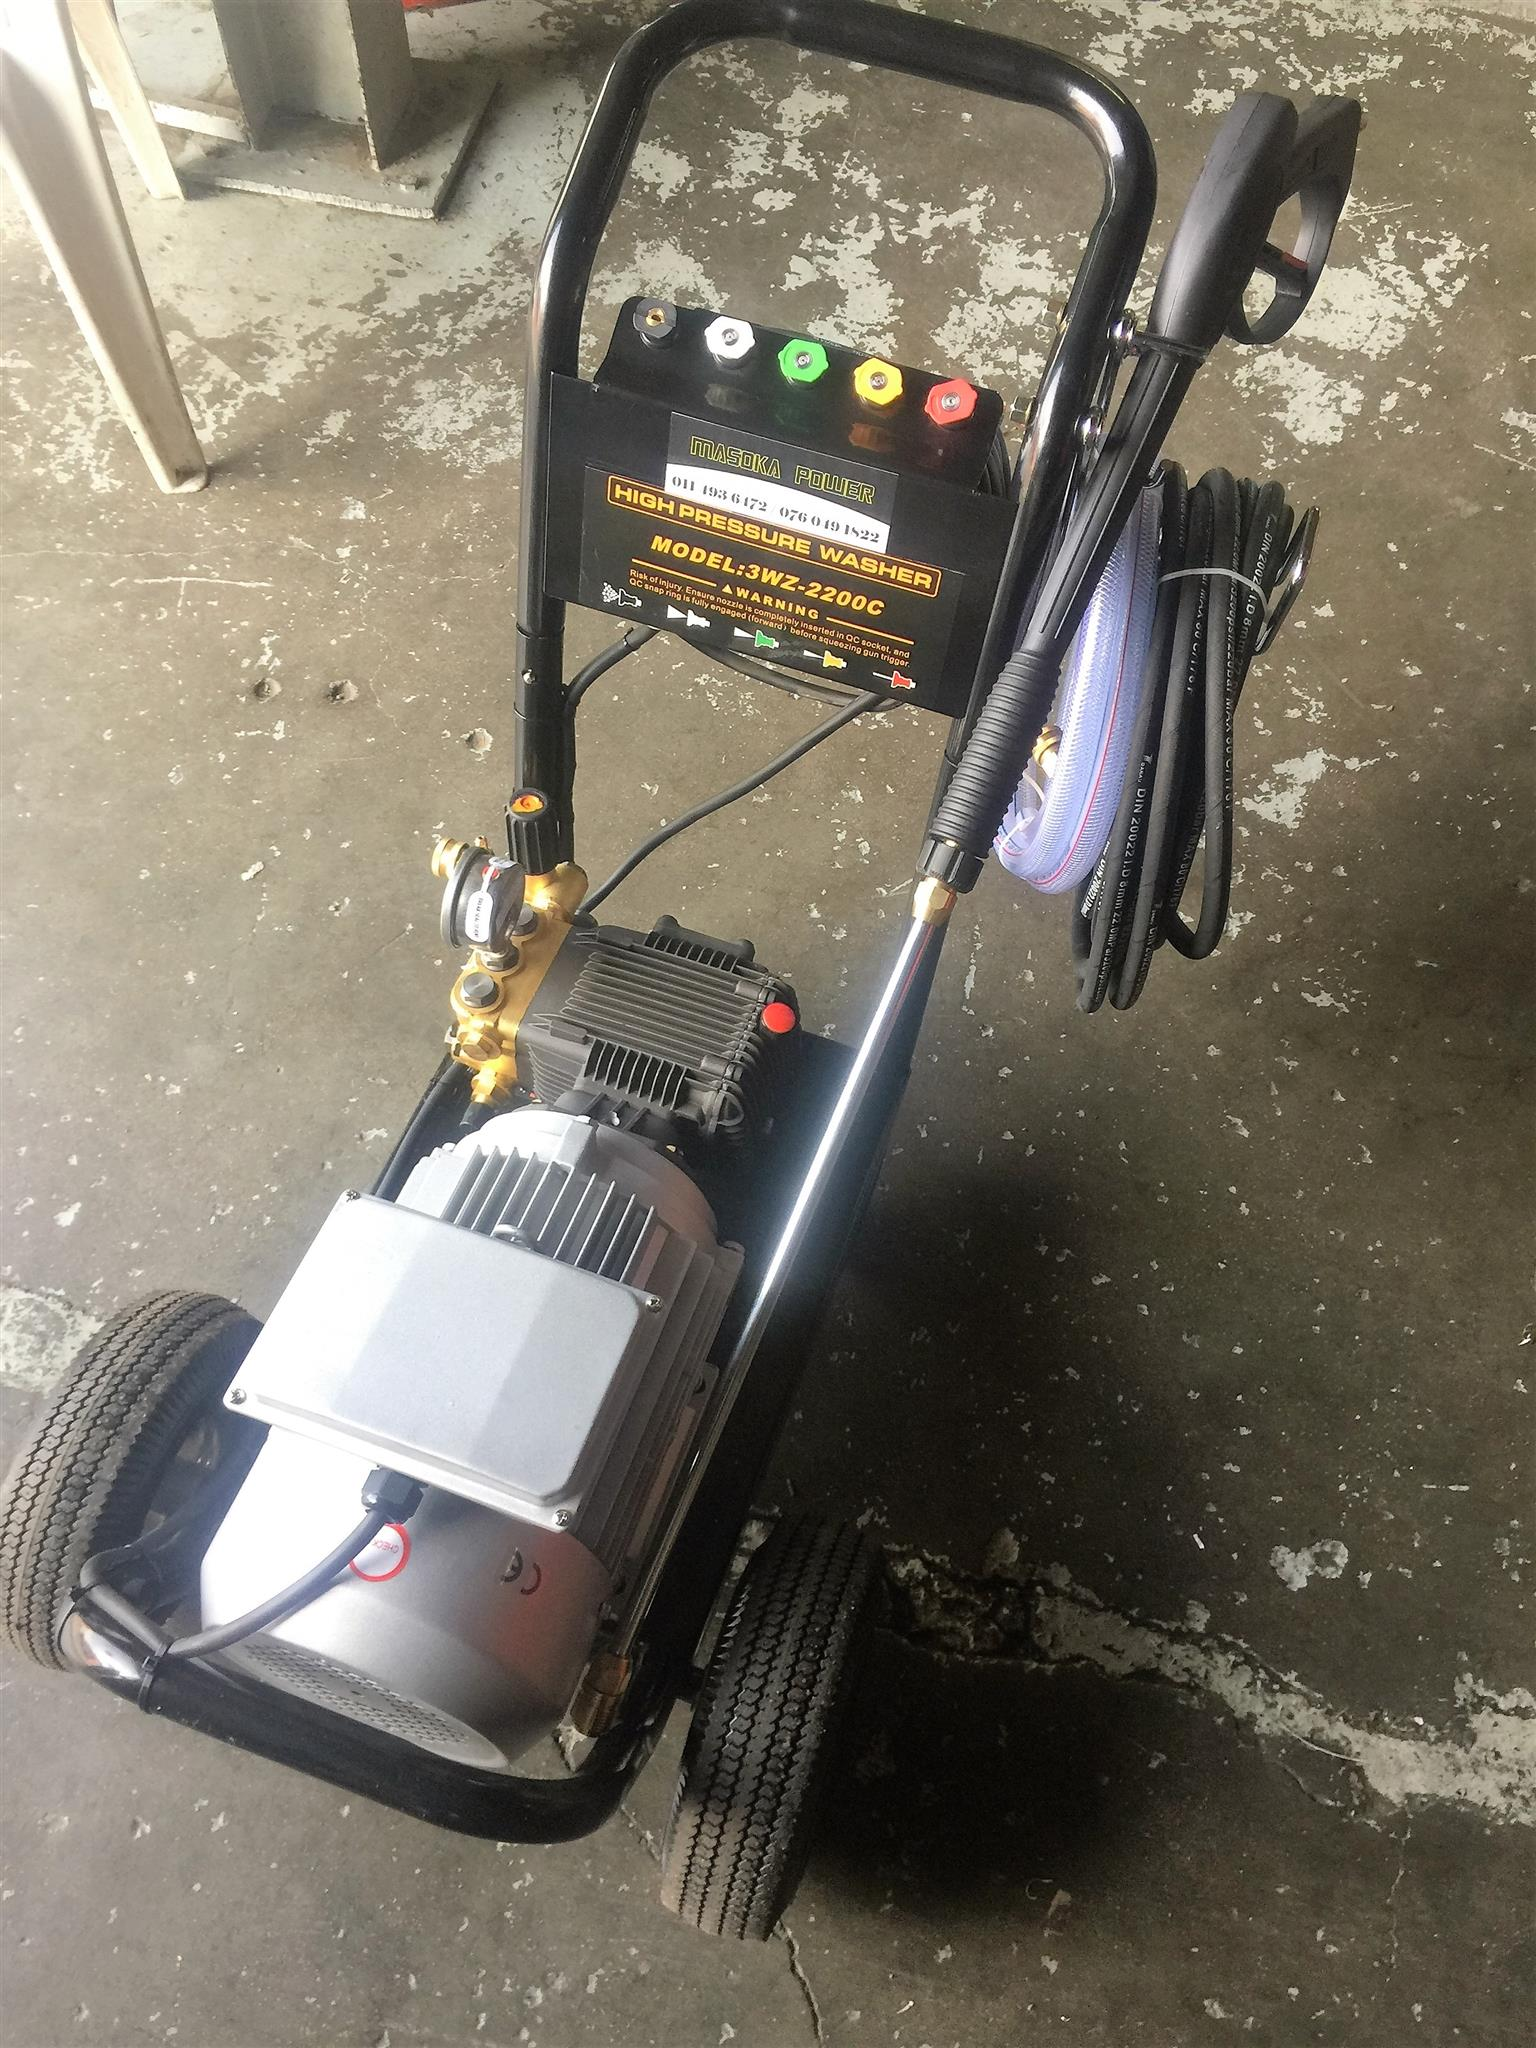 AN INCREDIBLE 12,900 FOR A 220V High Pressure Washer, HURRY STOCKS ARE QUICKLY